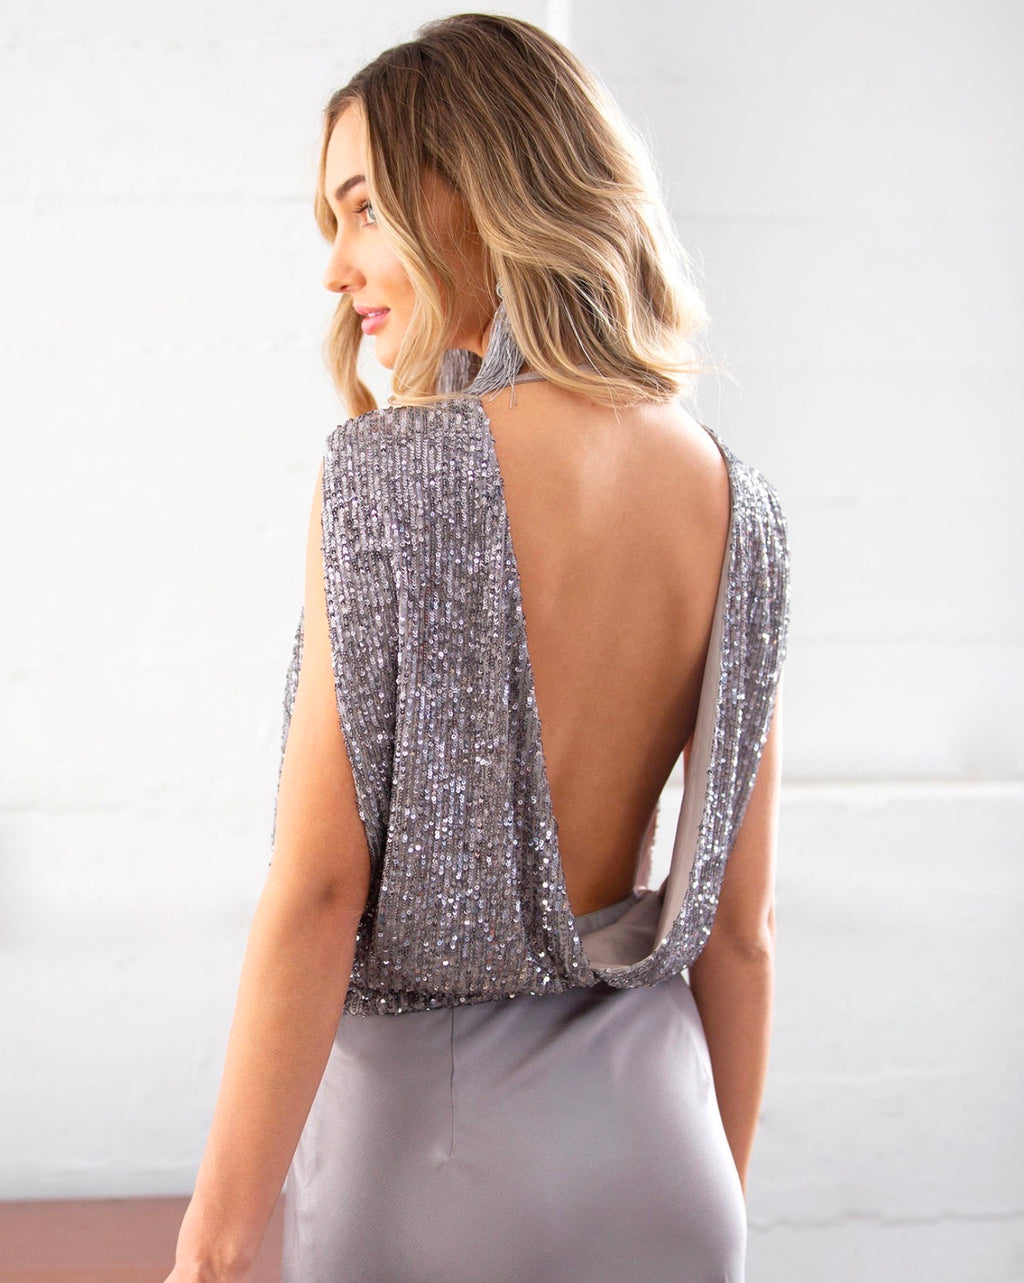 City Girl Sleeveless Surplice Sequins Tank Top in Silver